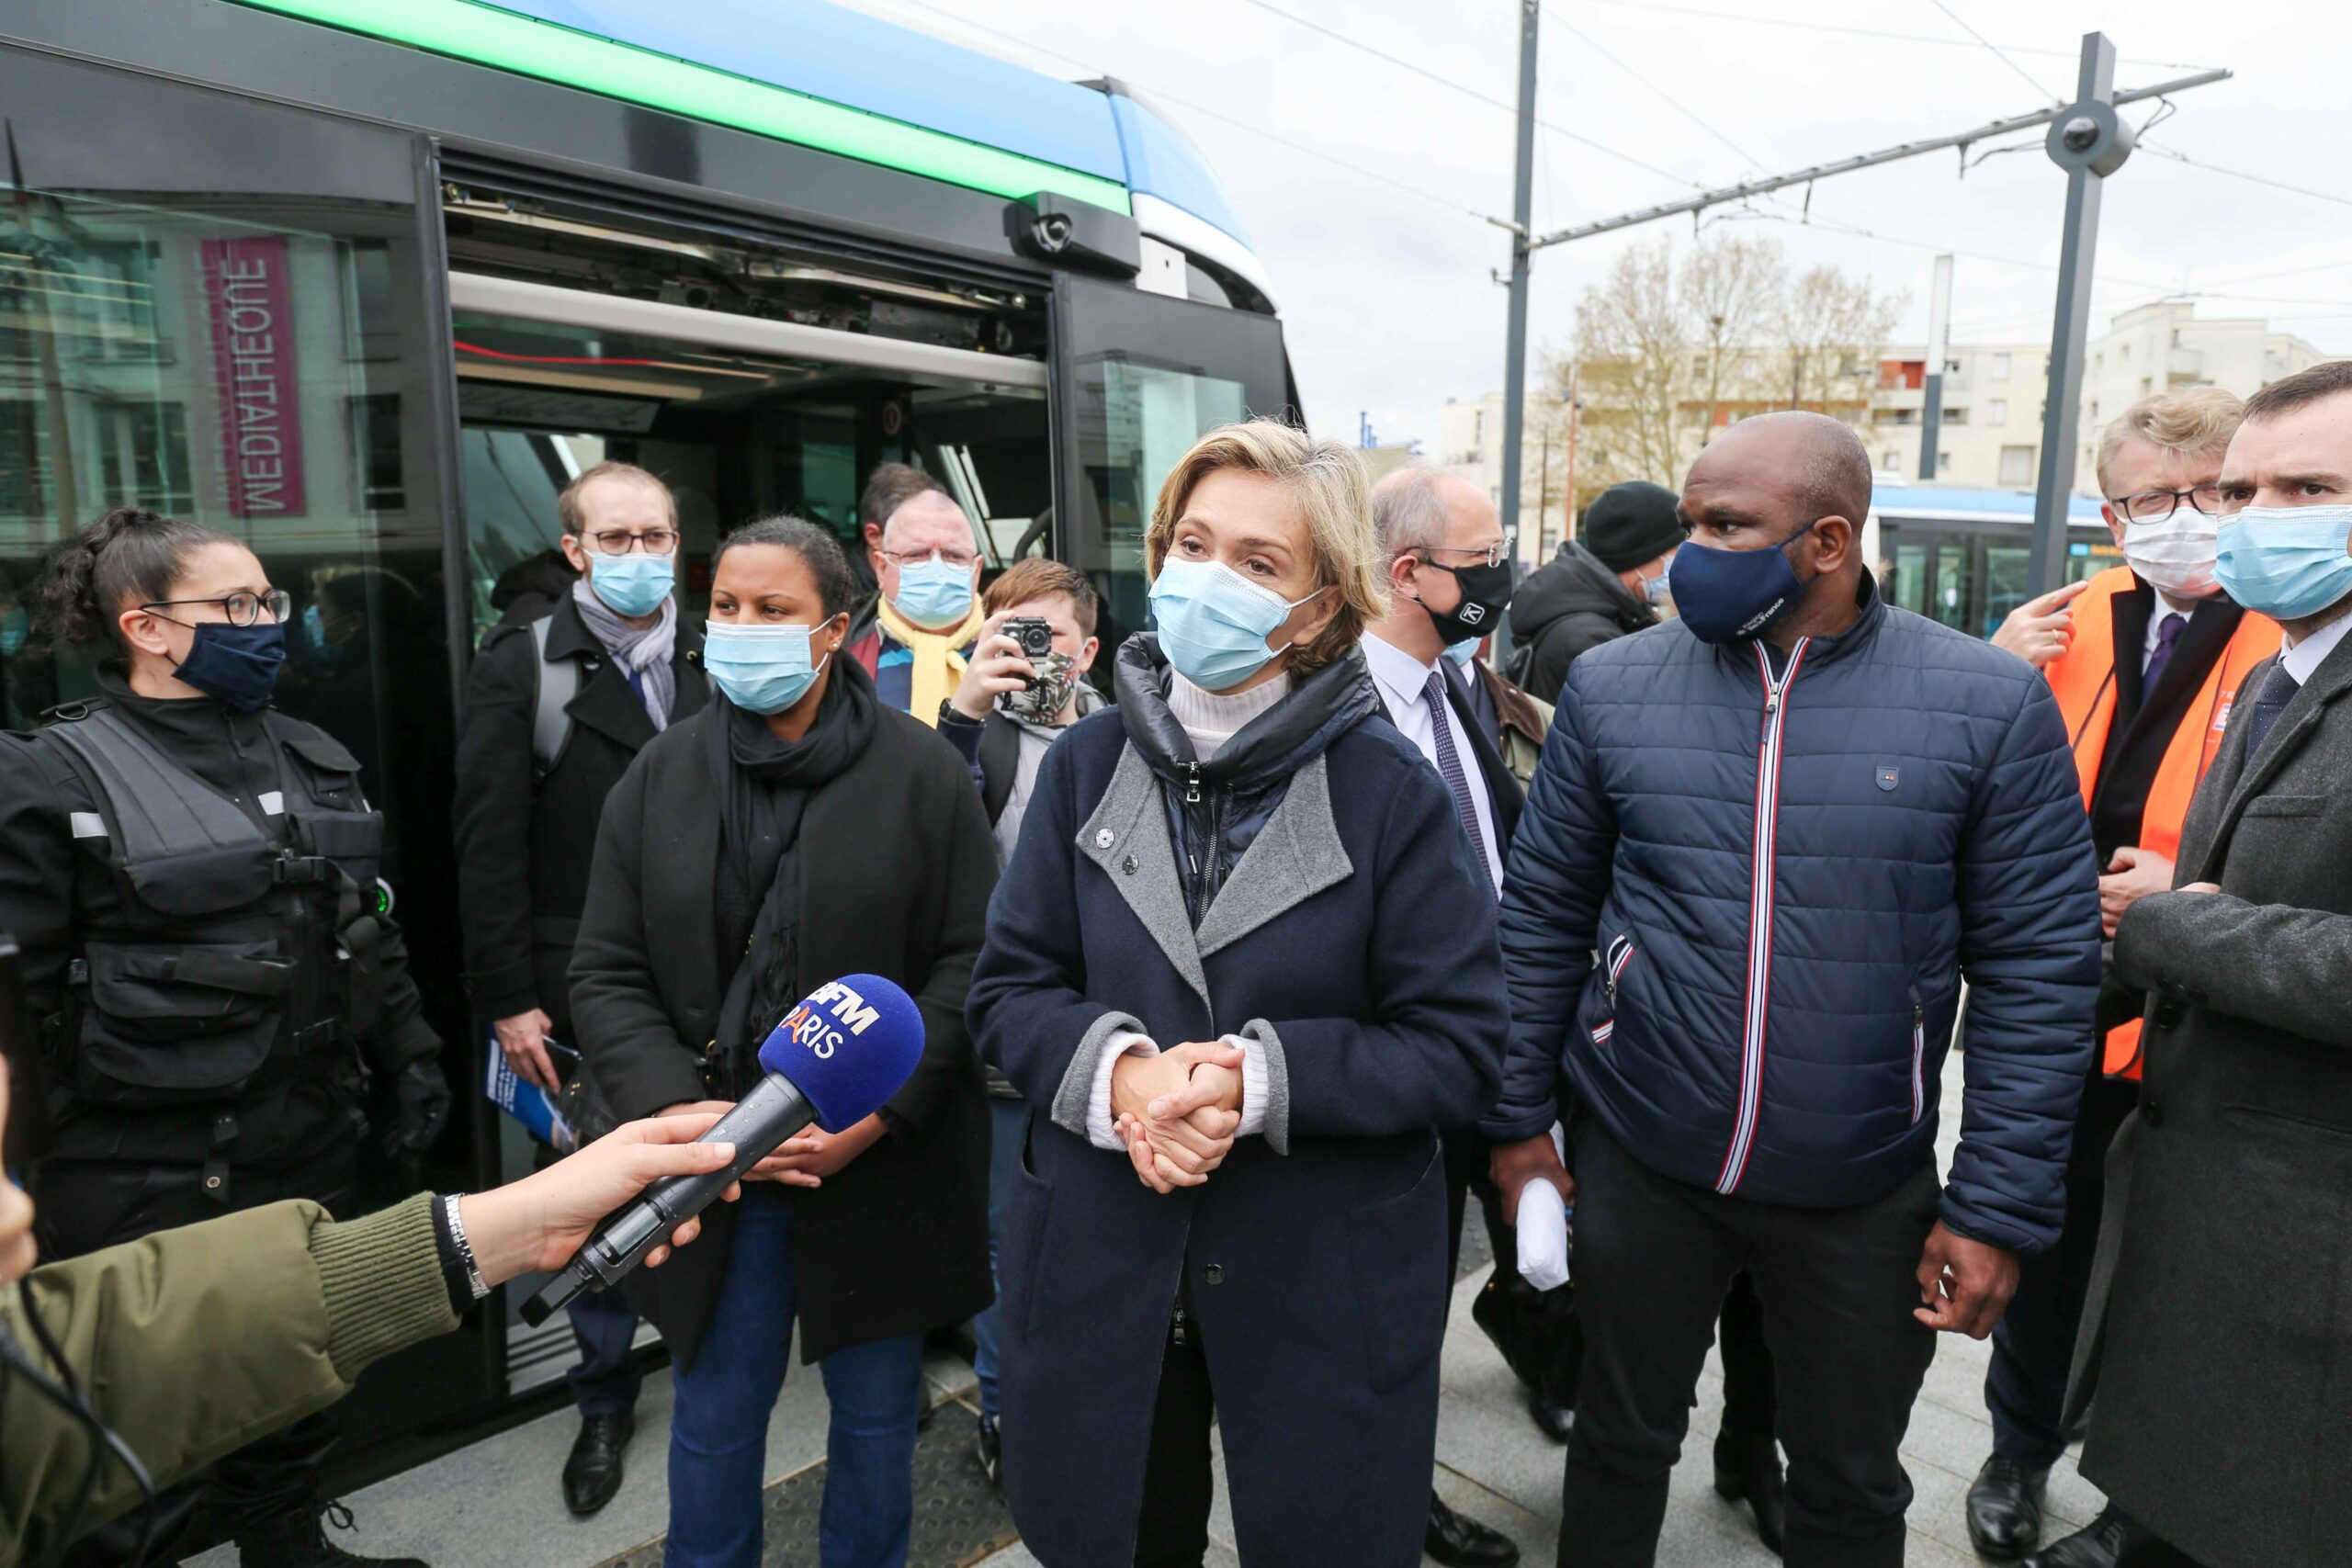 President of the French region of Ile-de-France Valerie Pecresse (C) speaks with the press as she  inaugurates the new tramway T9 tram line between Porte de Choisy and Orly City, southeastern Paris, on April 10, 2021 at Porte de Choisy, in Paris.Line T9